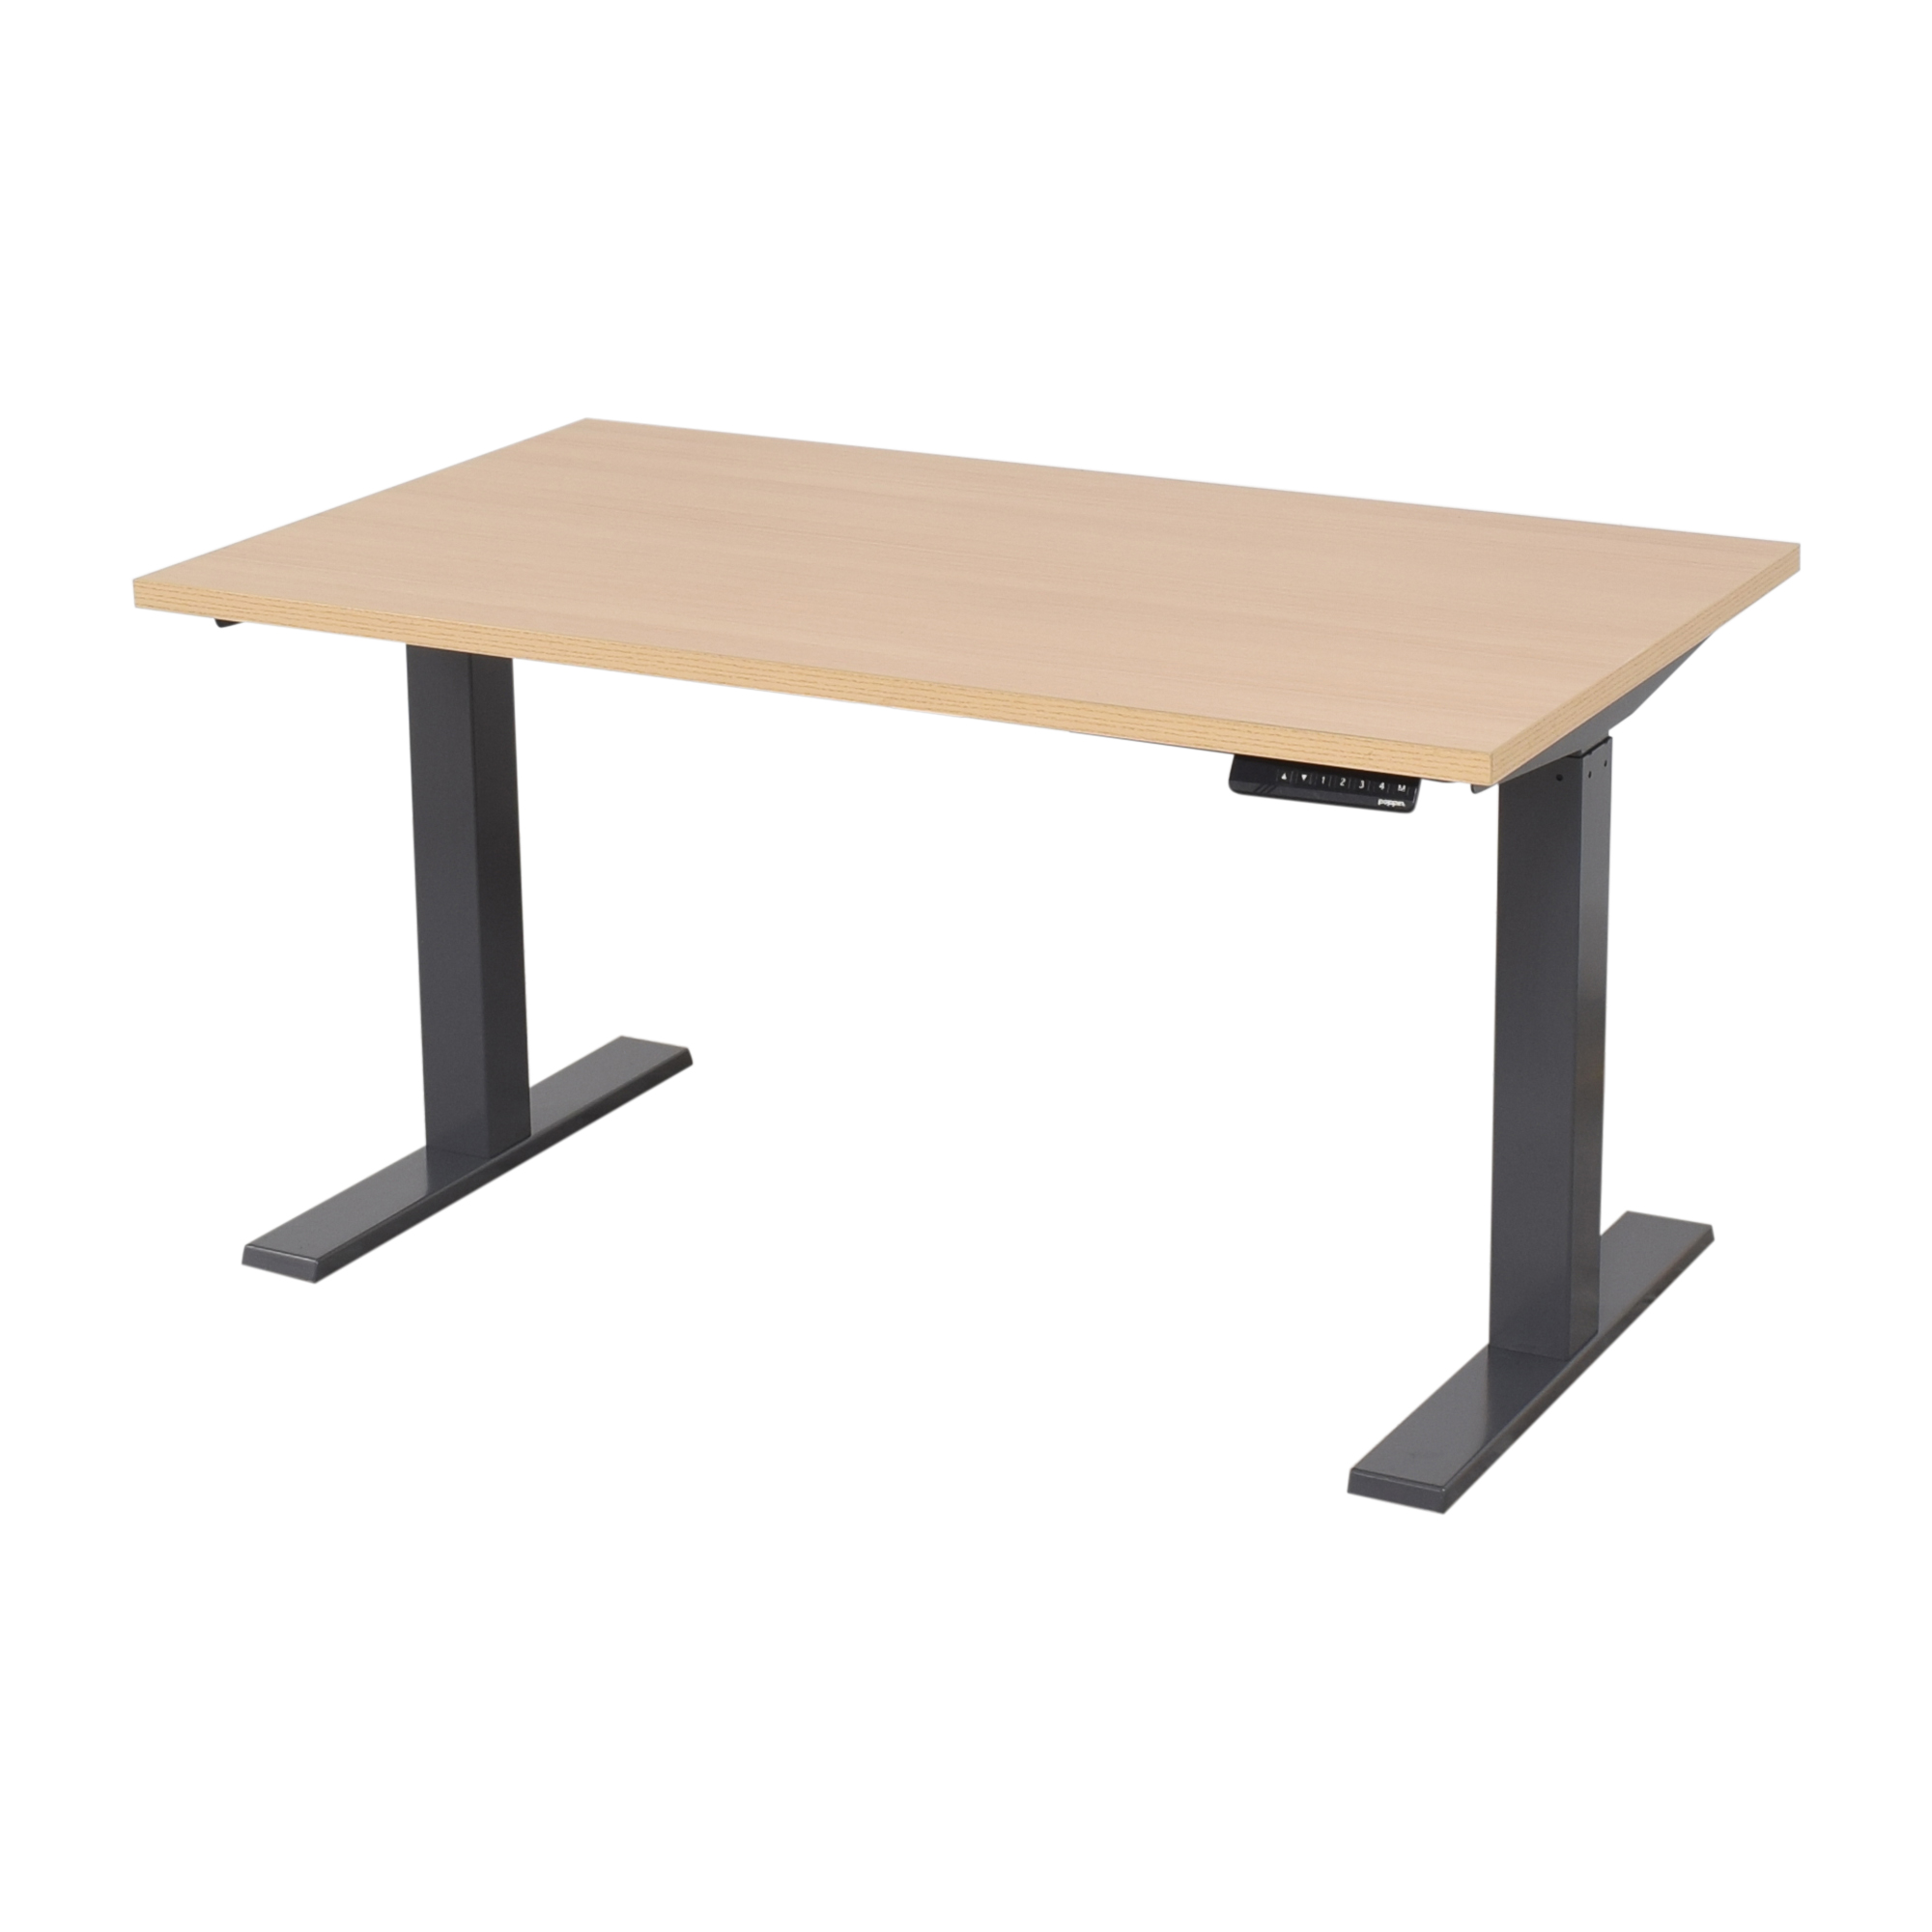 buy Poppin Poppin Series L Adjustable Height Desk online